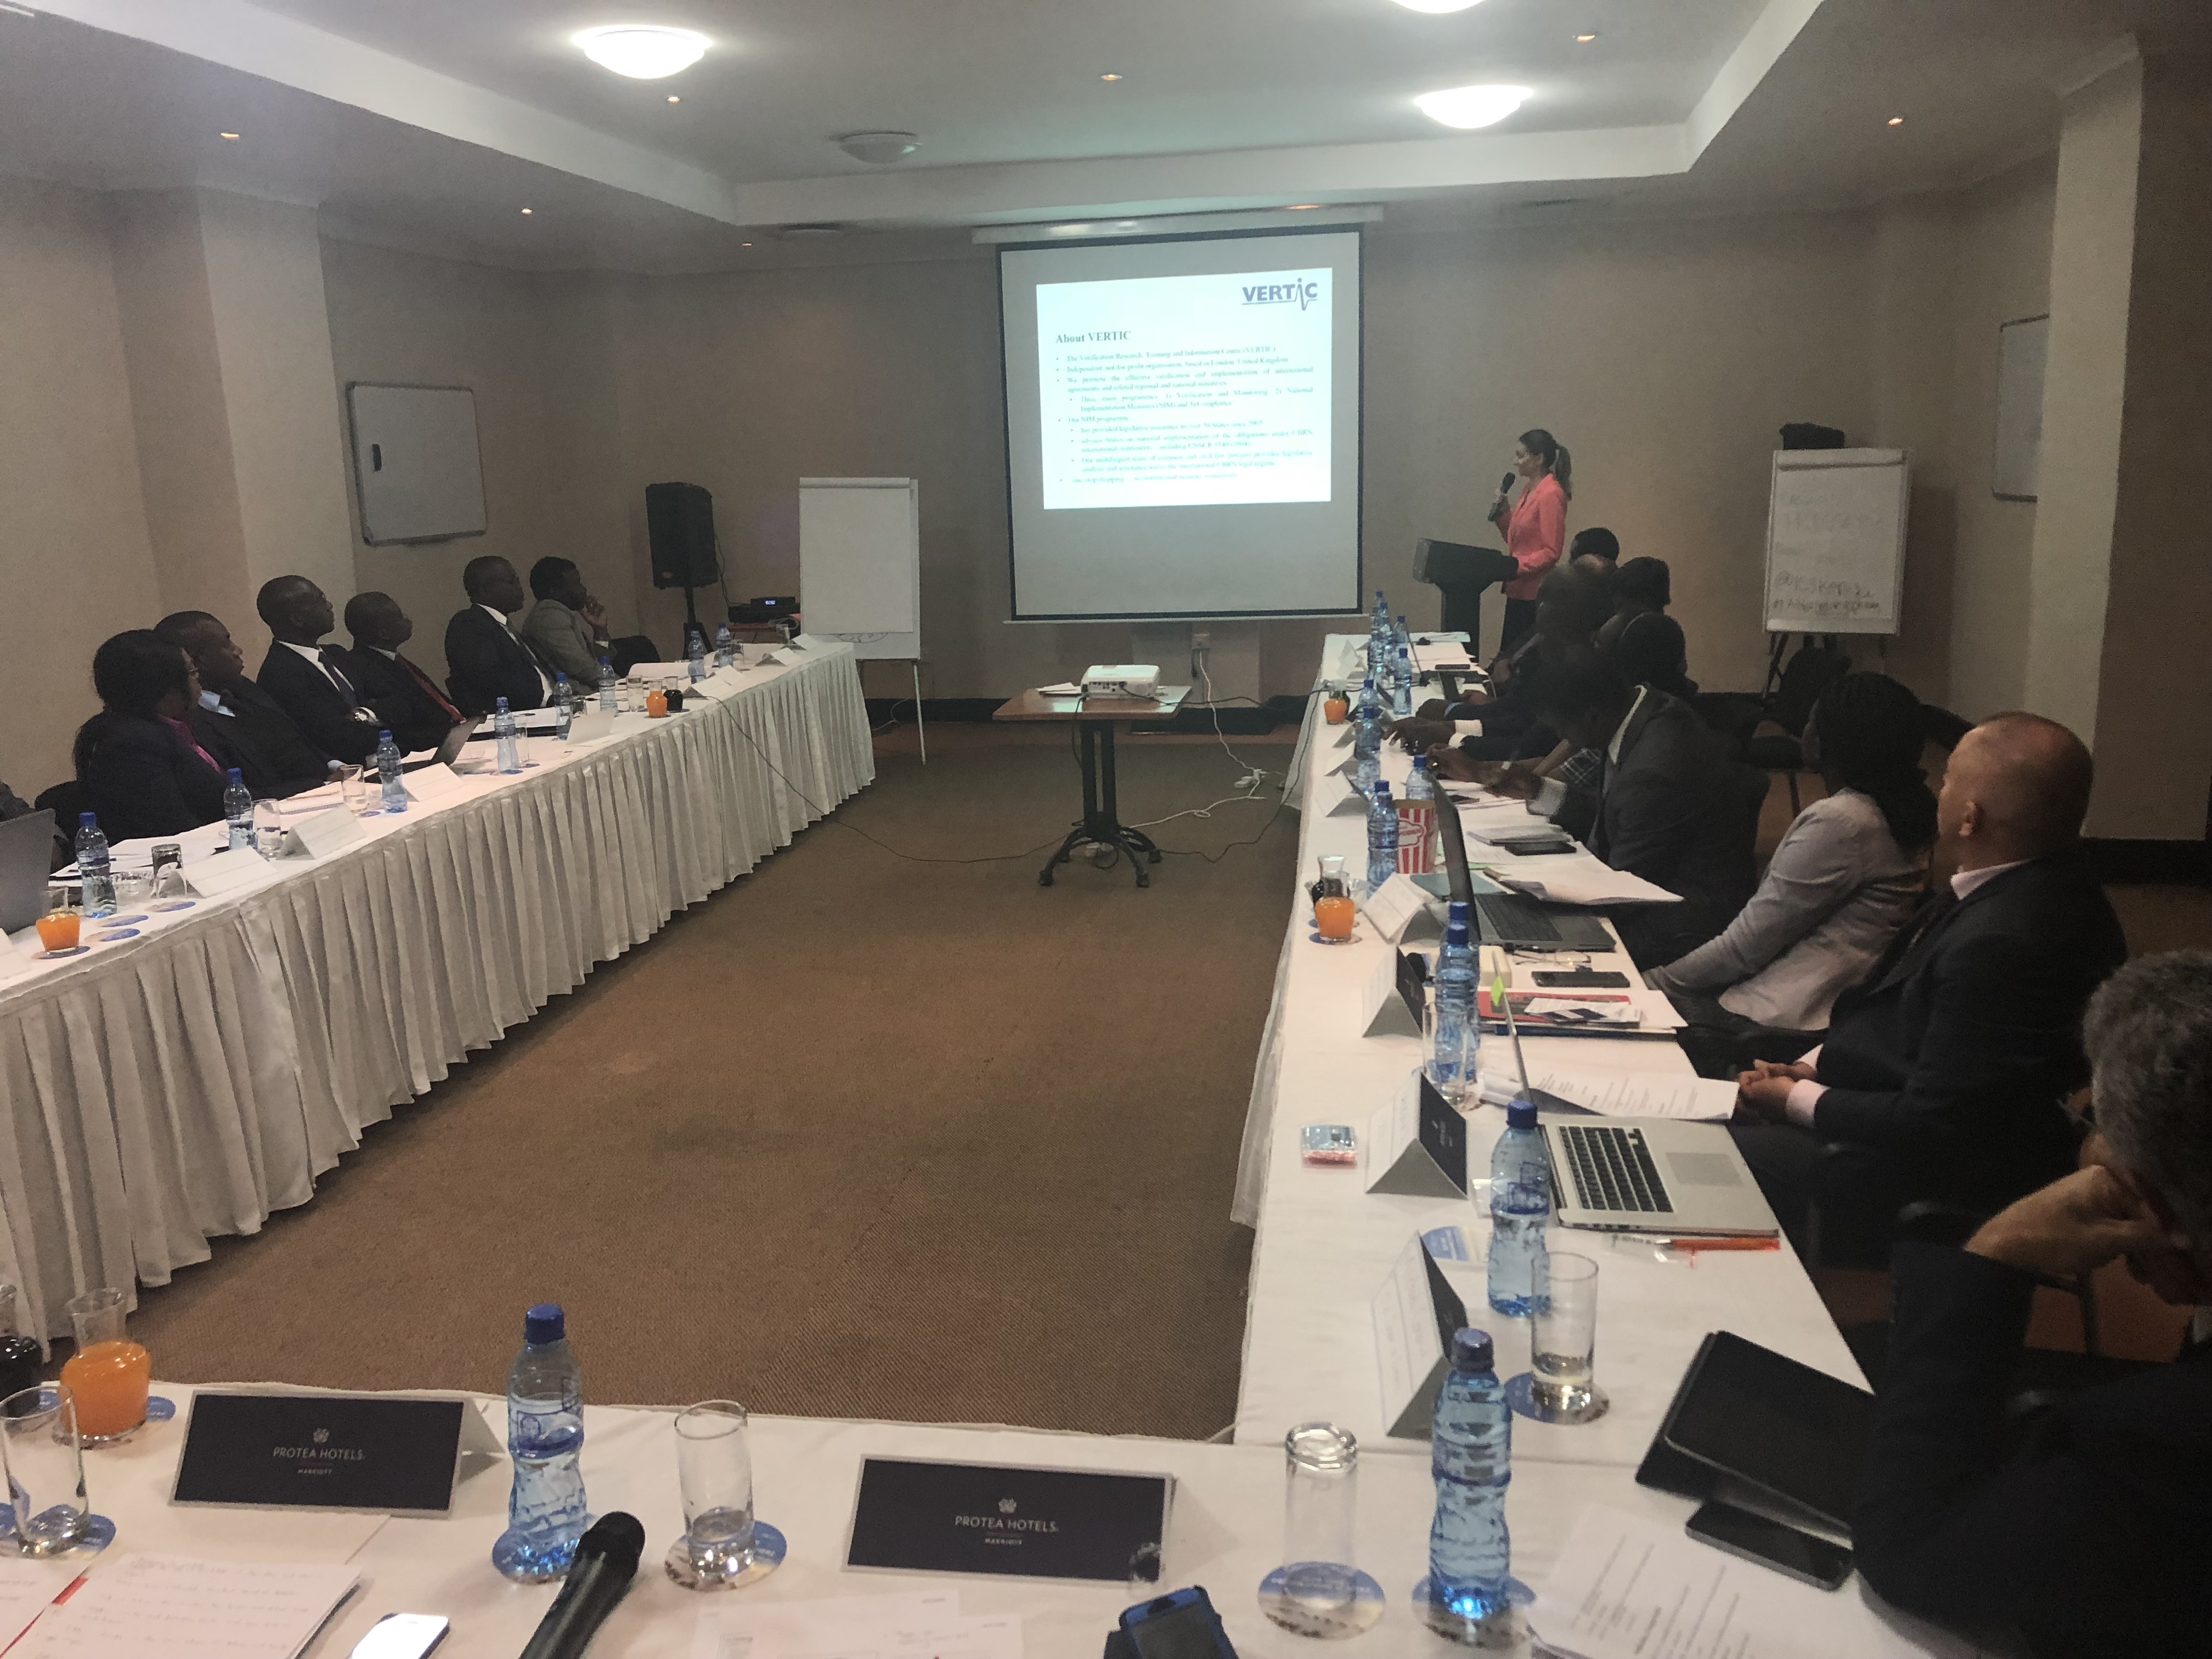 VERTIC participates in UNSCR 1540 and Strategic Trade workshop in